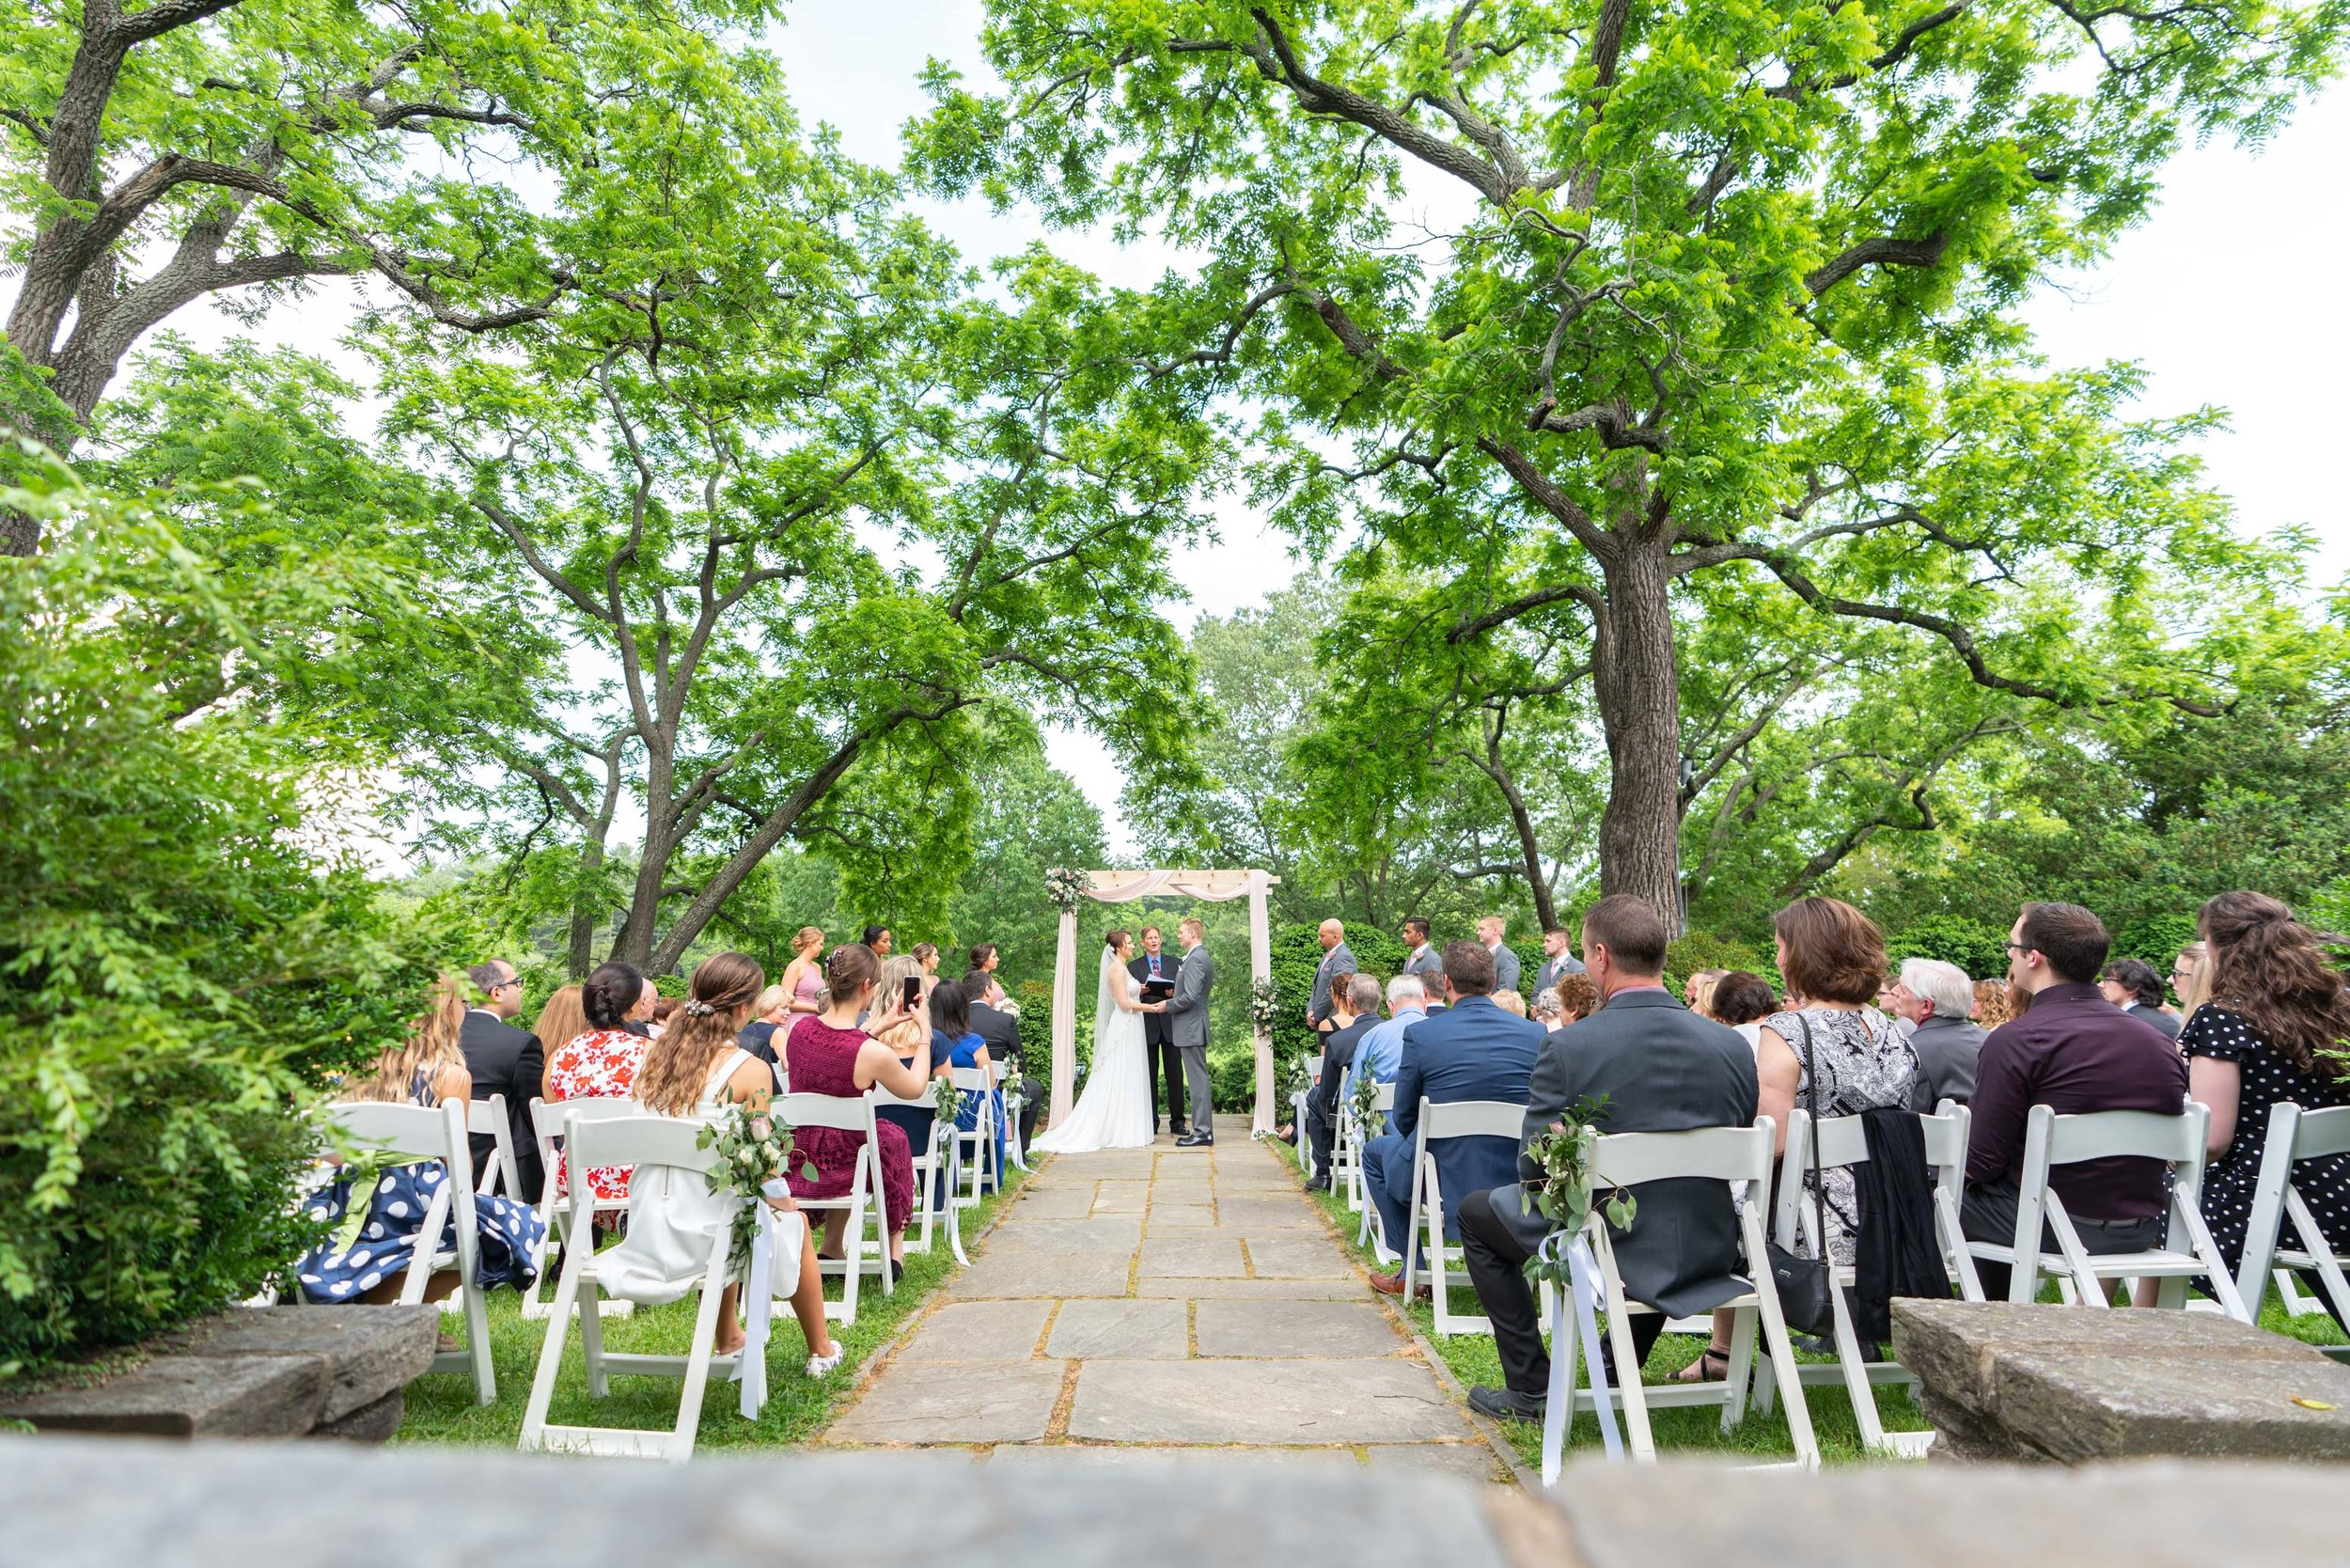 Ceremony site in spring early May at Glenview Mansion wedding